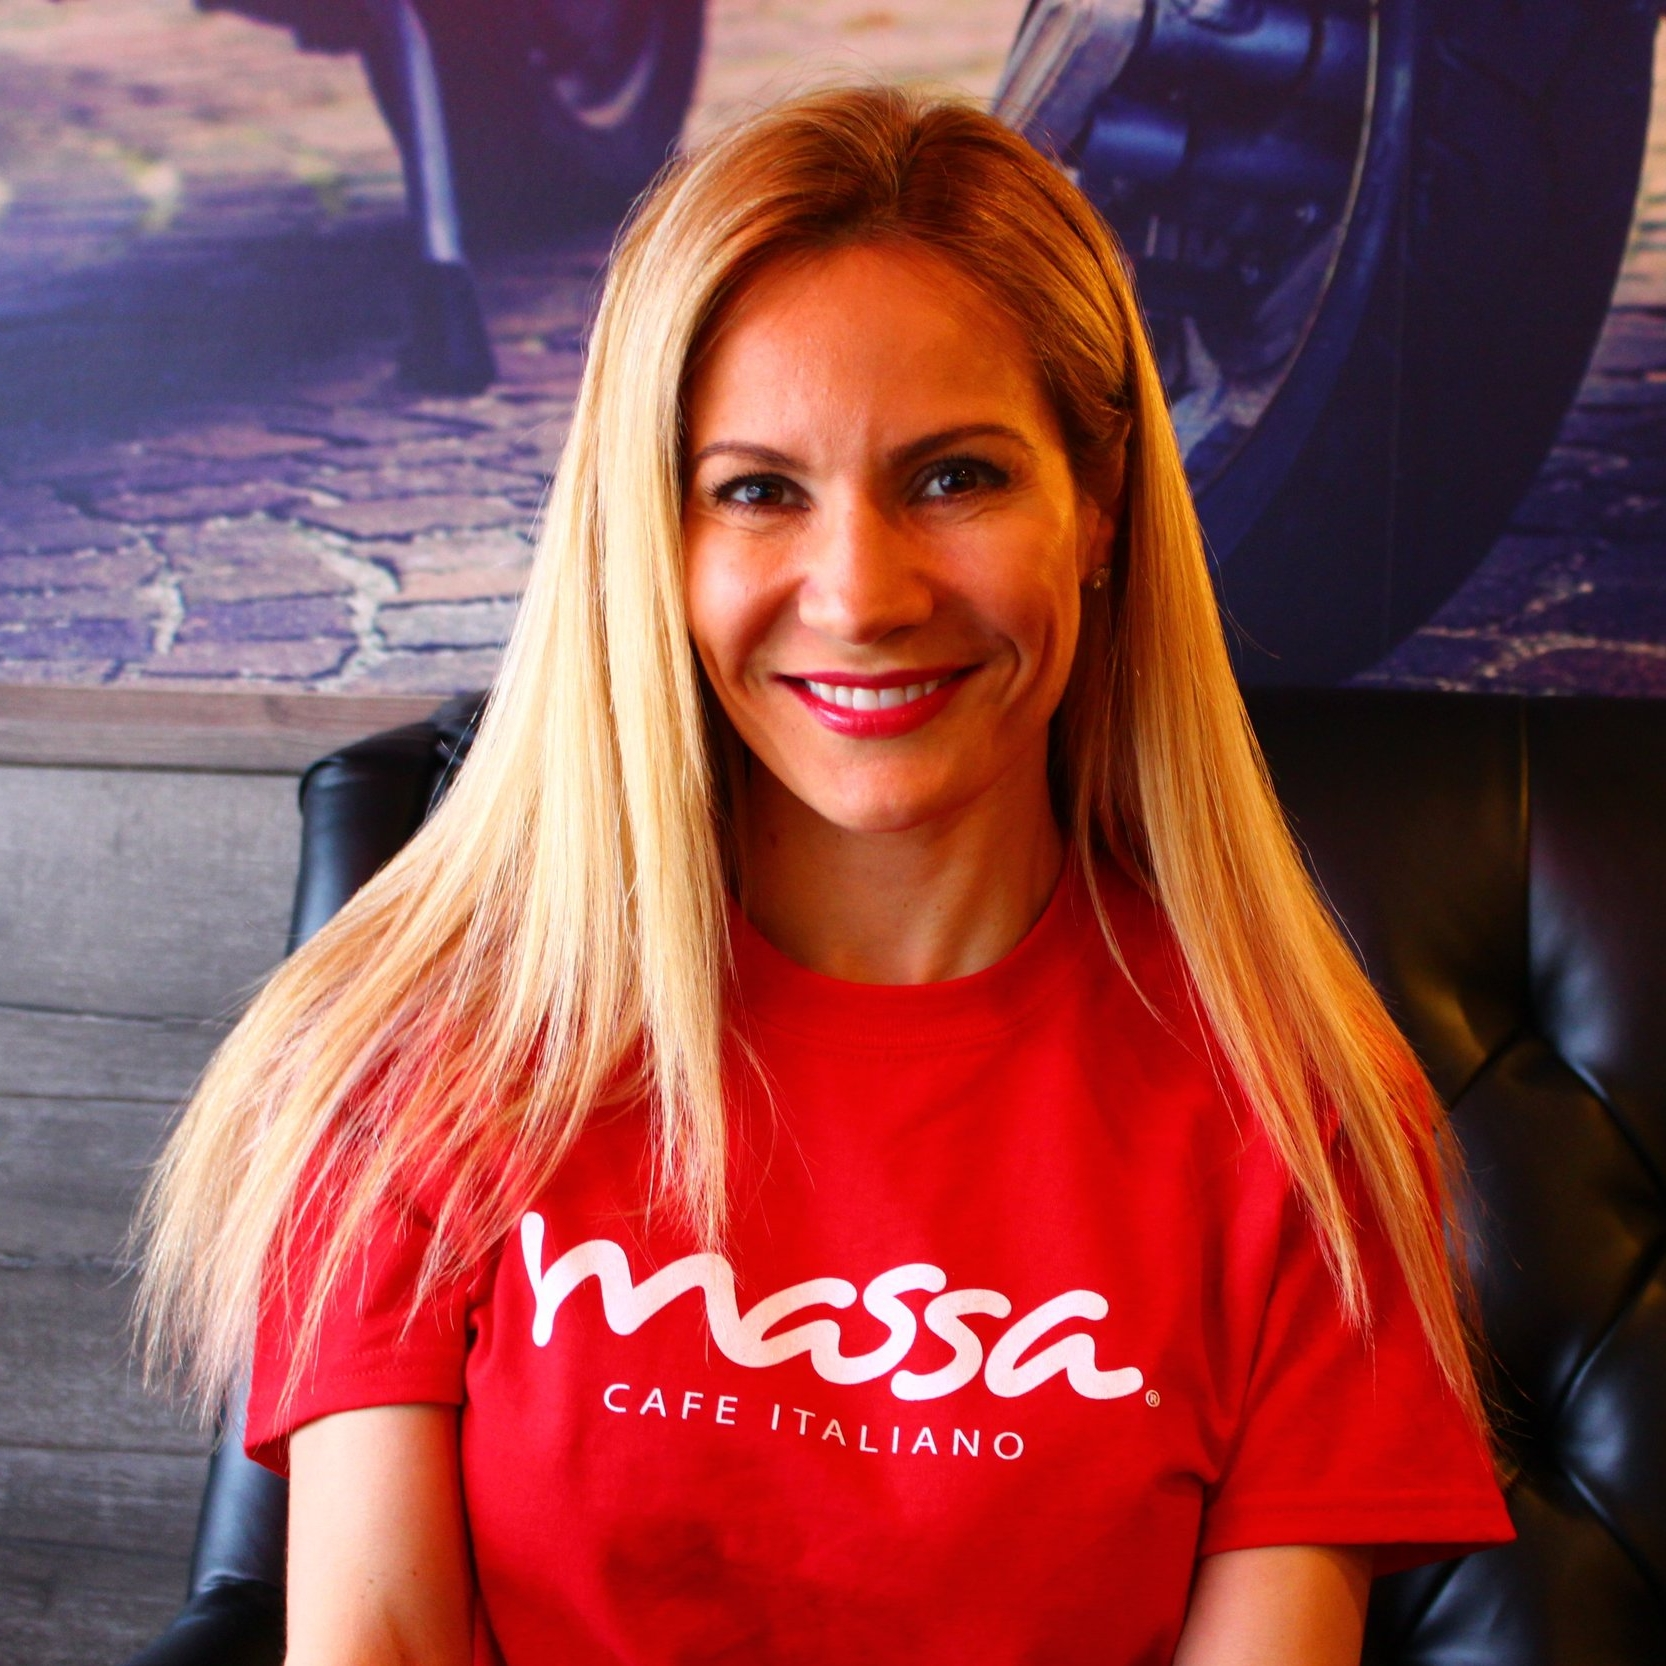 Giovanna Lollino - As Vice President and Operations Manager of Ala Mode Inc., Giovanna Lollino plans, directs and coordinates all internal operations. This includes day-to-day responsibilities of improving performance, productivity, efficiency and profitability at Ala Mode Inc. and at Massa Cafe Italiano. She has nearly 20 years of implementing effective methods and strategies like book-keeping and scheduling, examining financial data/statements, contributing to day-to-day success of operations, and recruiting, training and supervising human resources department.